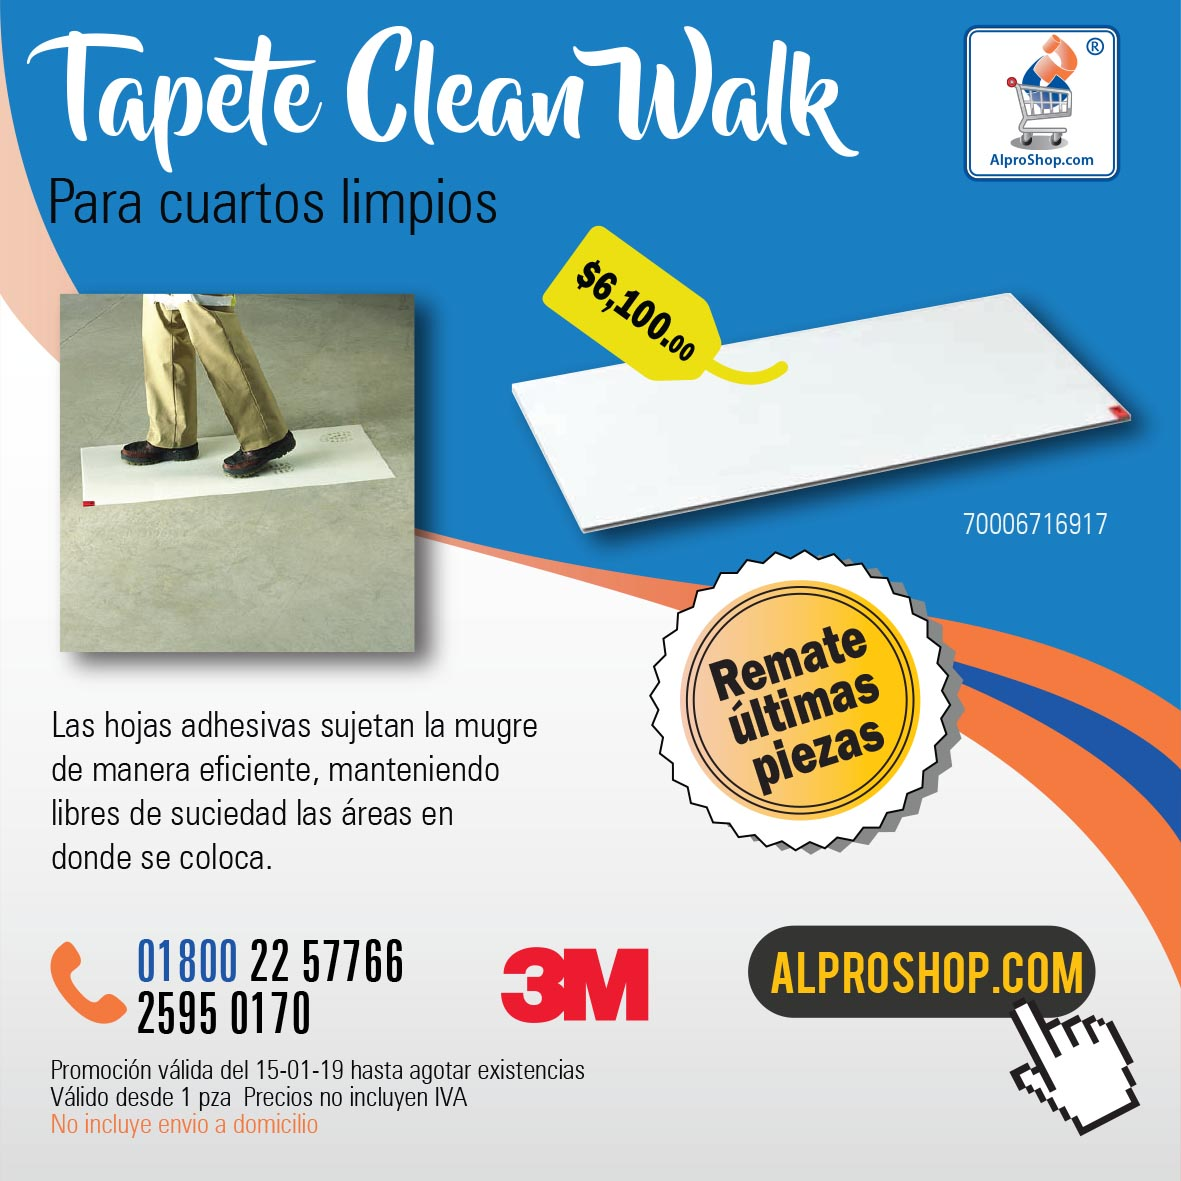 tapete-clean-walk.jpg